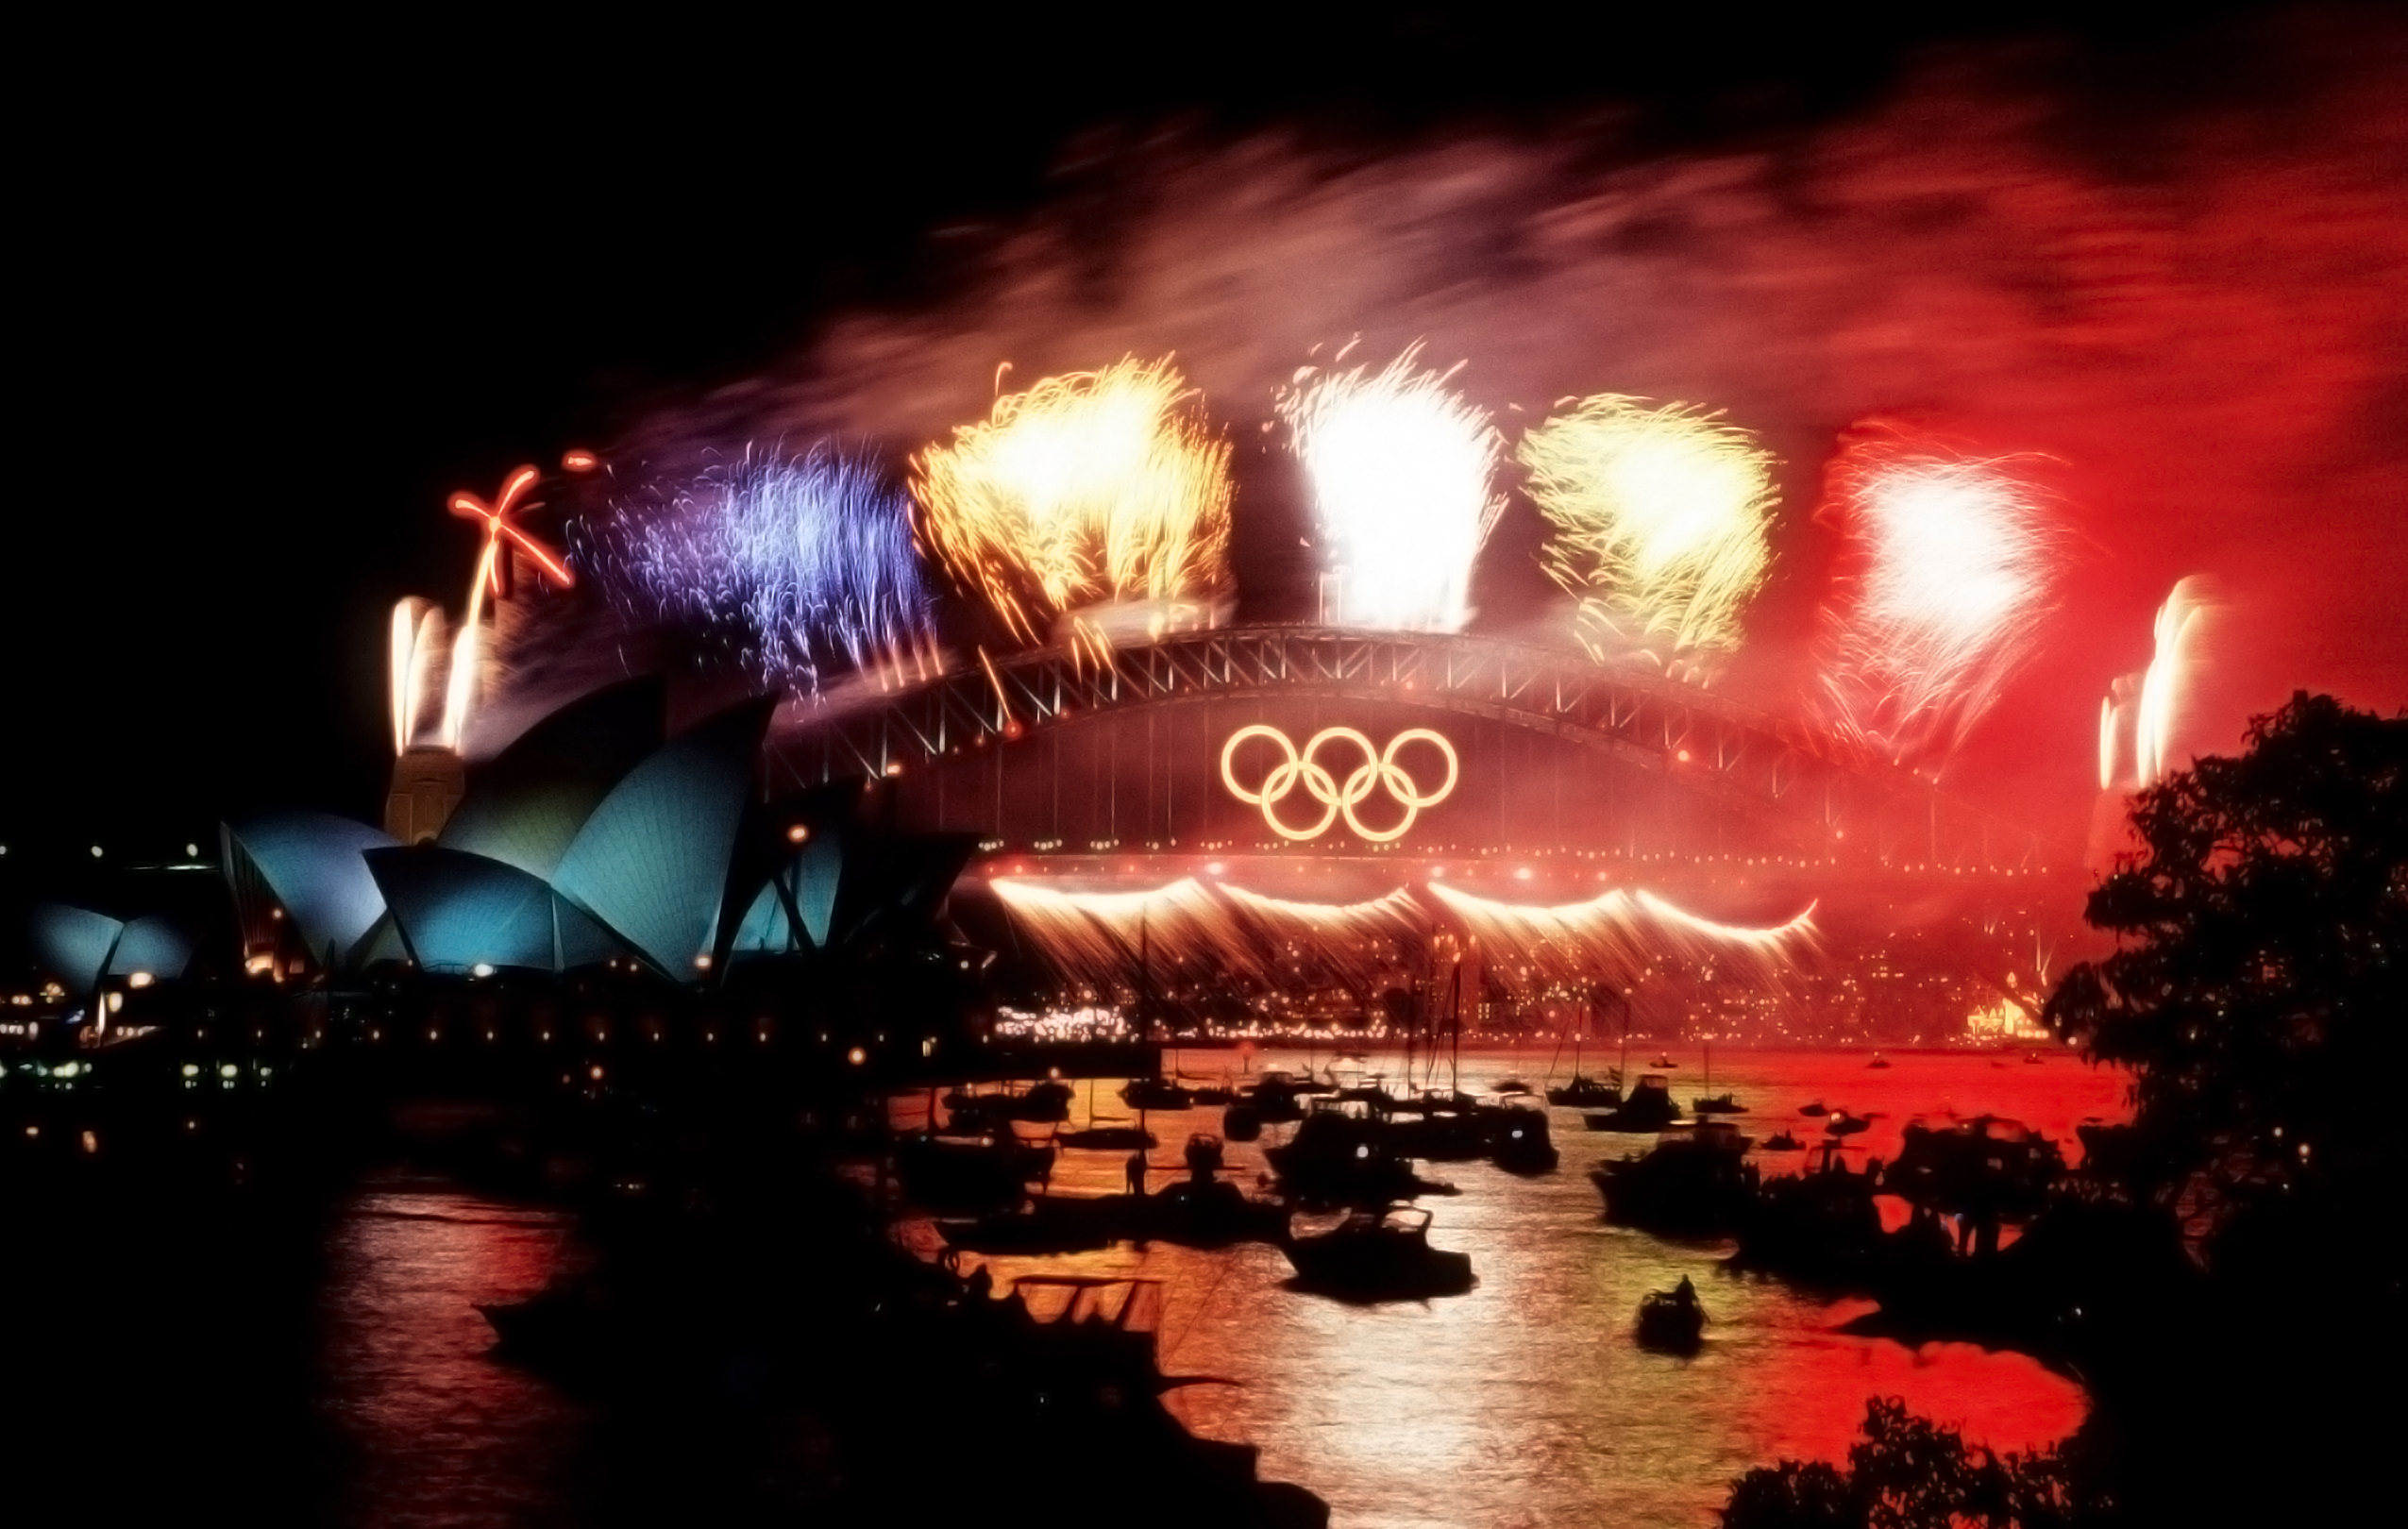 Fireworks at the Sydney Harbour Bridge during the Sydney Olympics in 2000. By David Shapinsky from Washington, D.C., United States - Syndey Olympic Fireworks During Closing Ceremonies by Robert A. Whitehead, USAF, October 2000 (DOD 001001-F-8217W-002), Public Domain, https://commons.wikimedia.org/w/index.php?curid=2703559